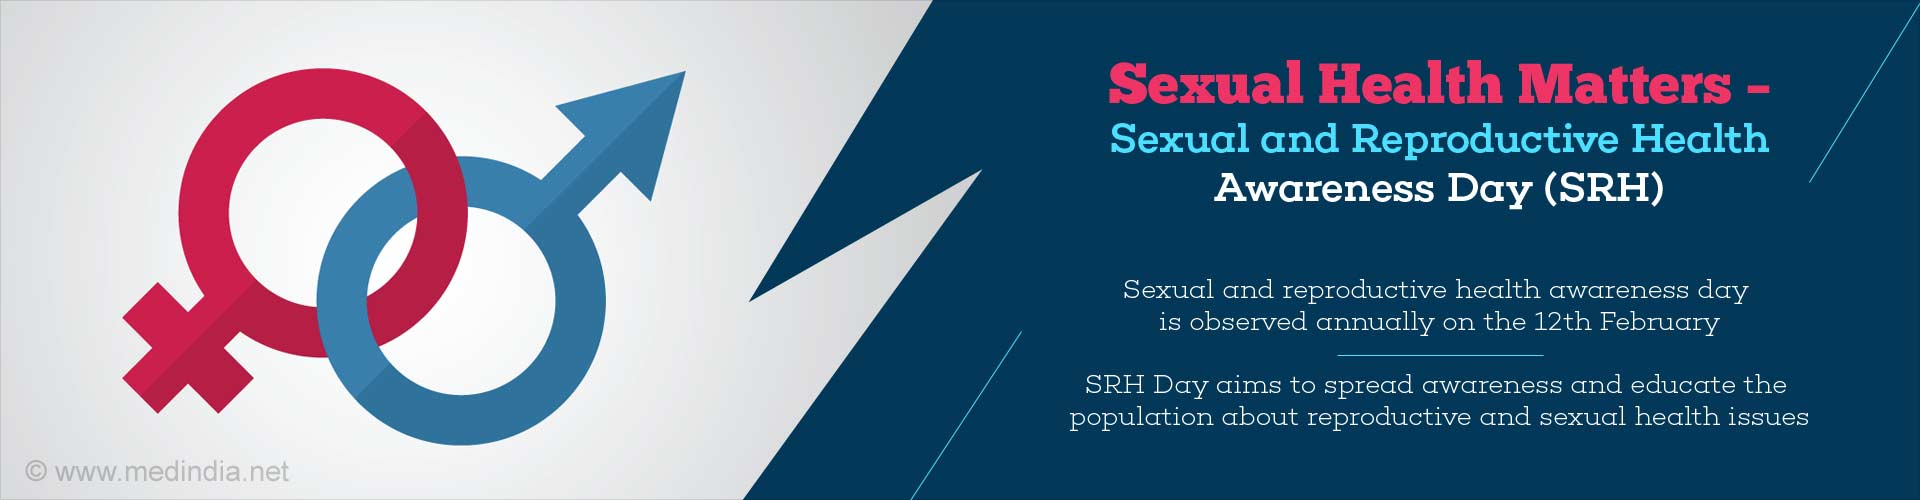 sexual health matters - sexual and reproductive health awareness day (SRH) - sexual and reproductive health awareness day is observed annually on 12th February - SRH day aims to spread awareness and educate the population about reproductive ans sexual health issues